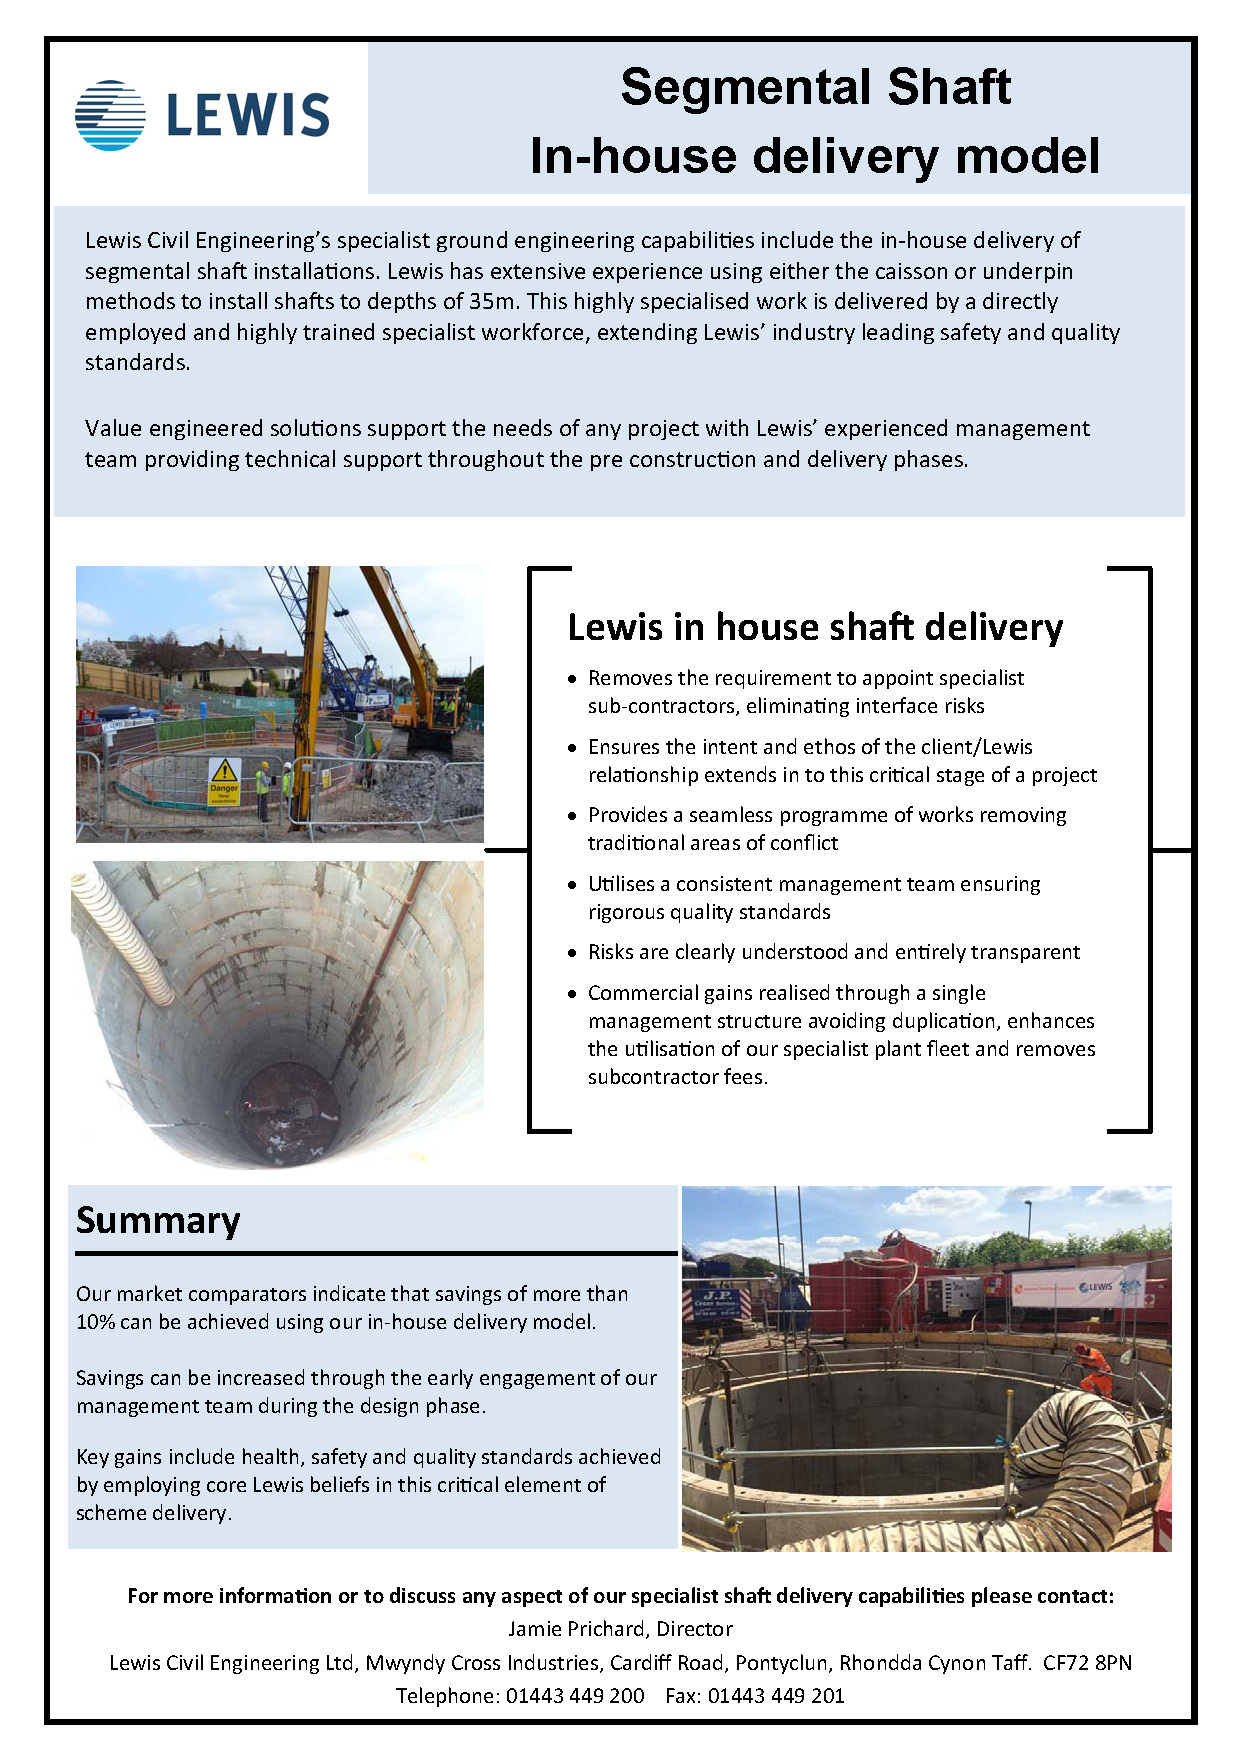 Lewis Inhouse Shaft Delivery Model